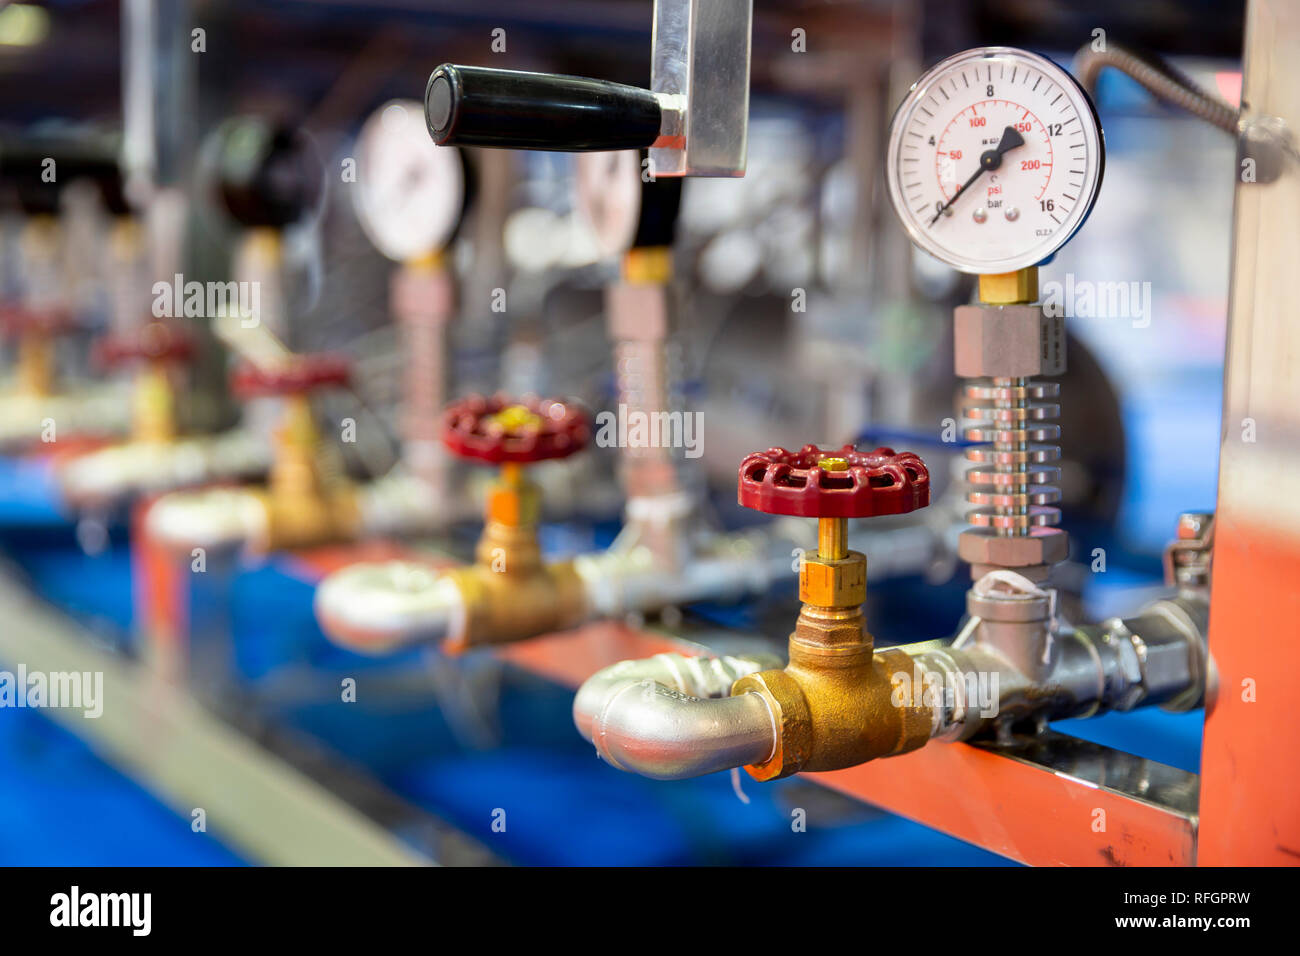 Pressure measuring instrument - bar, psi. Red metal valves on the pipes. Pressure device for industry system. - Stock Image